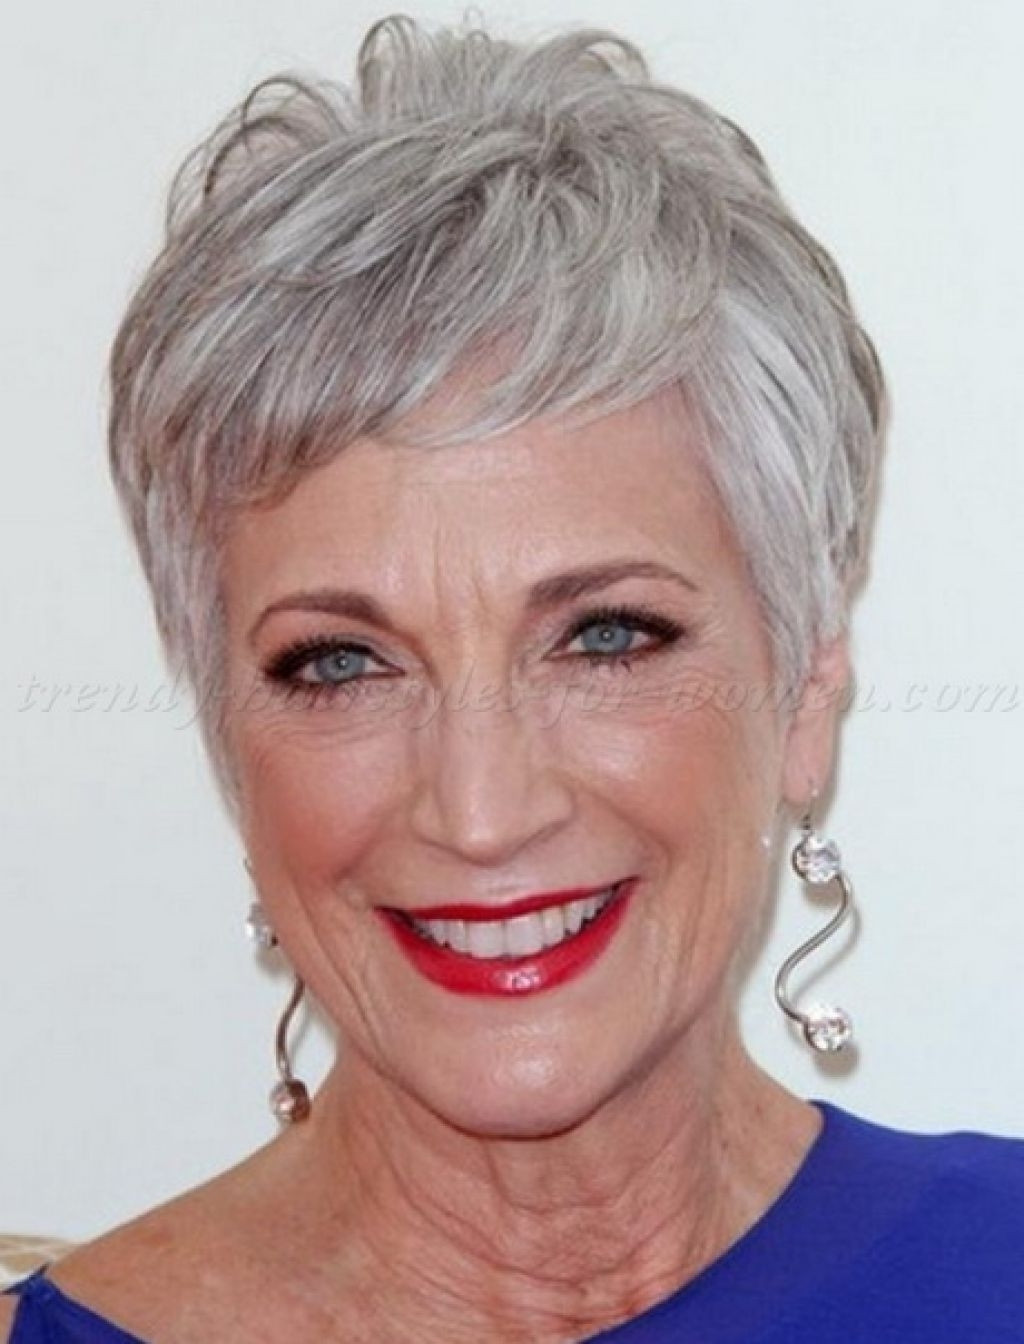 Best ideas about Short Haircuts For Over 60 . Save or Pin Short Grey Hairstyles Over 60 Now.